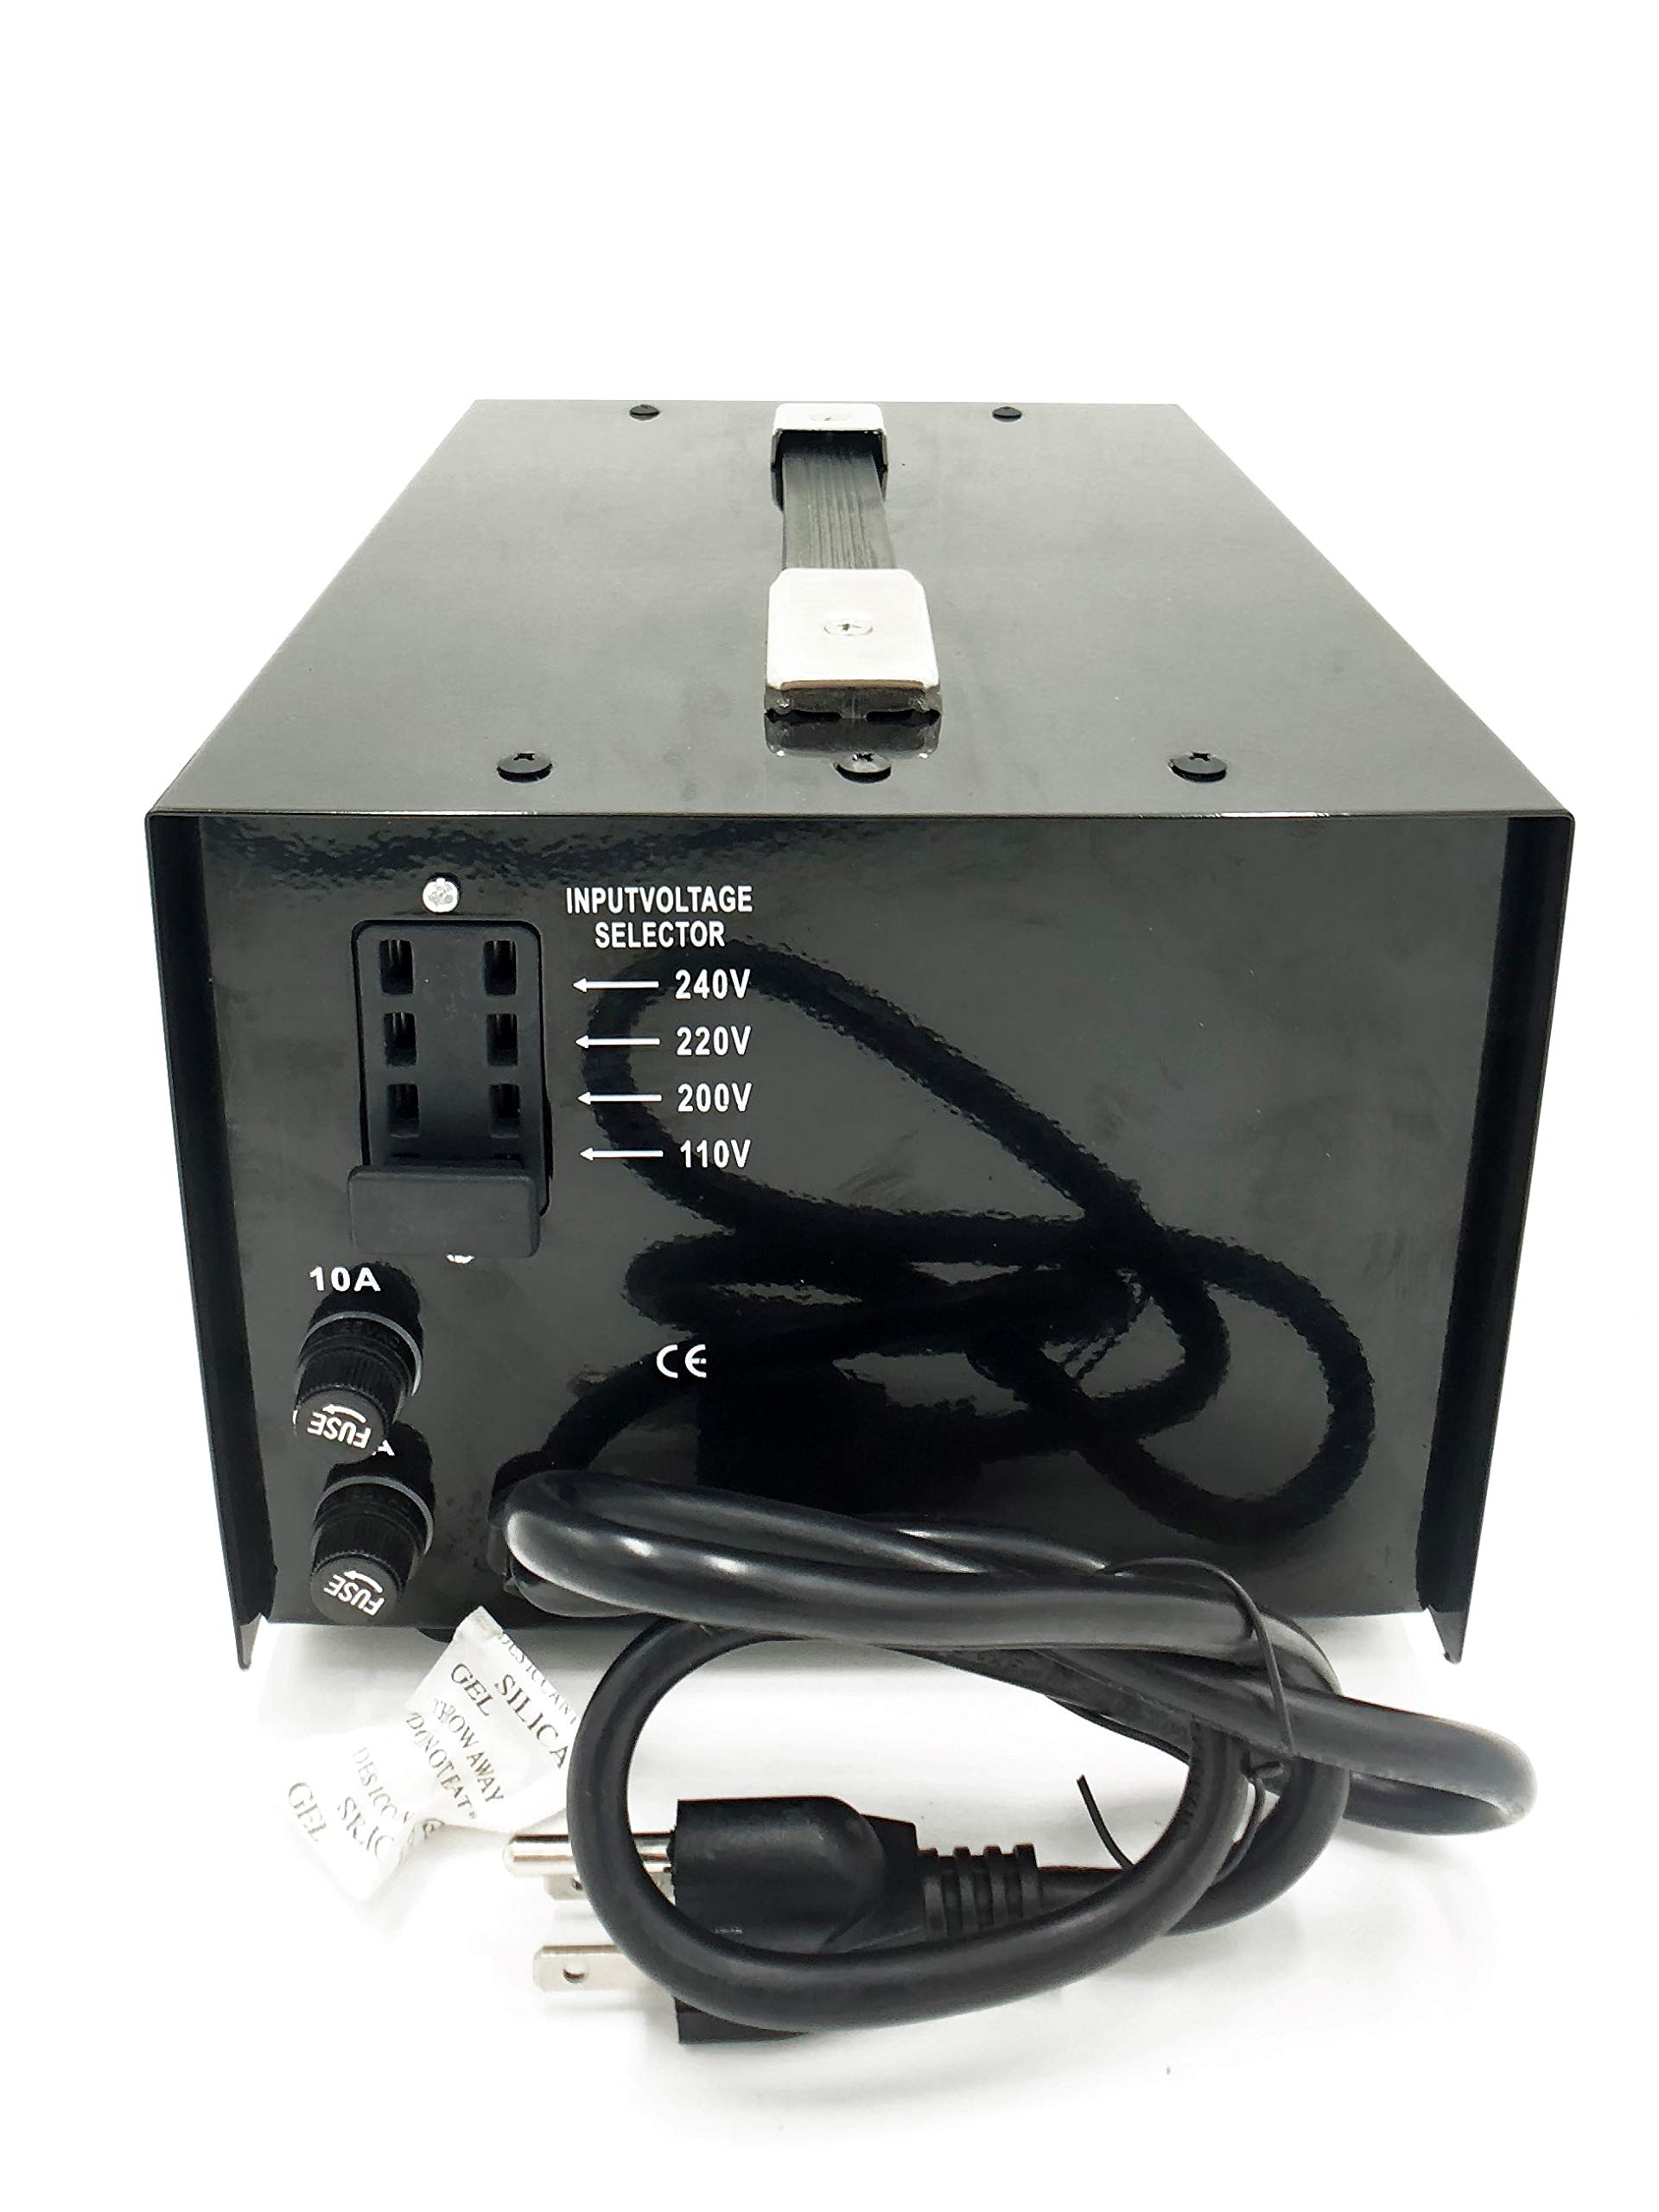 1000W Auto Step Up & Step Down Voltage Transformer Converter, STU-C Series Heavy-duty AC 110/220V Converter with US Standard, Universal, Schuko AC Outlets & DC 5V USB Port by Goldsource by Goldsource (Image #4)